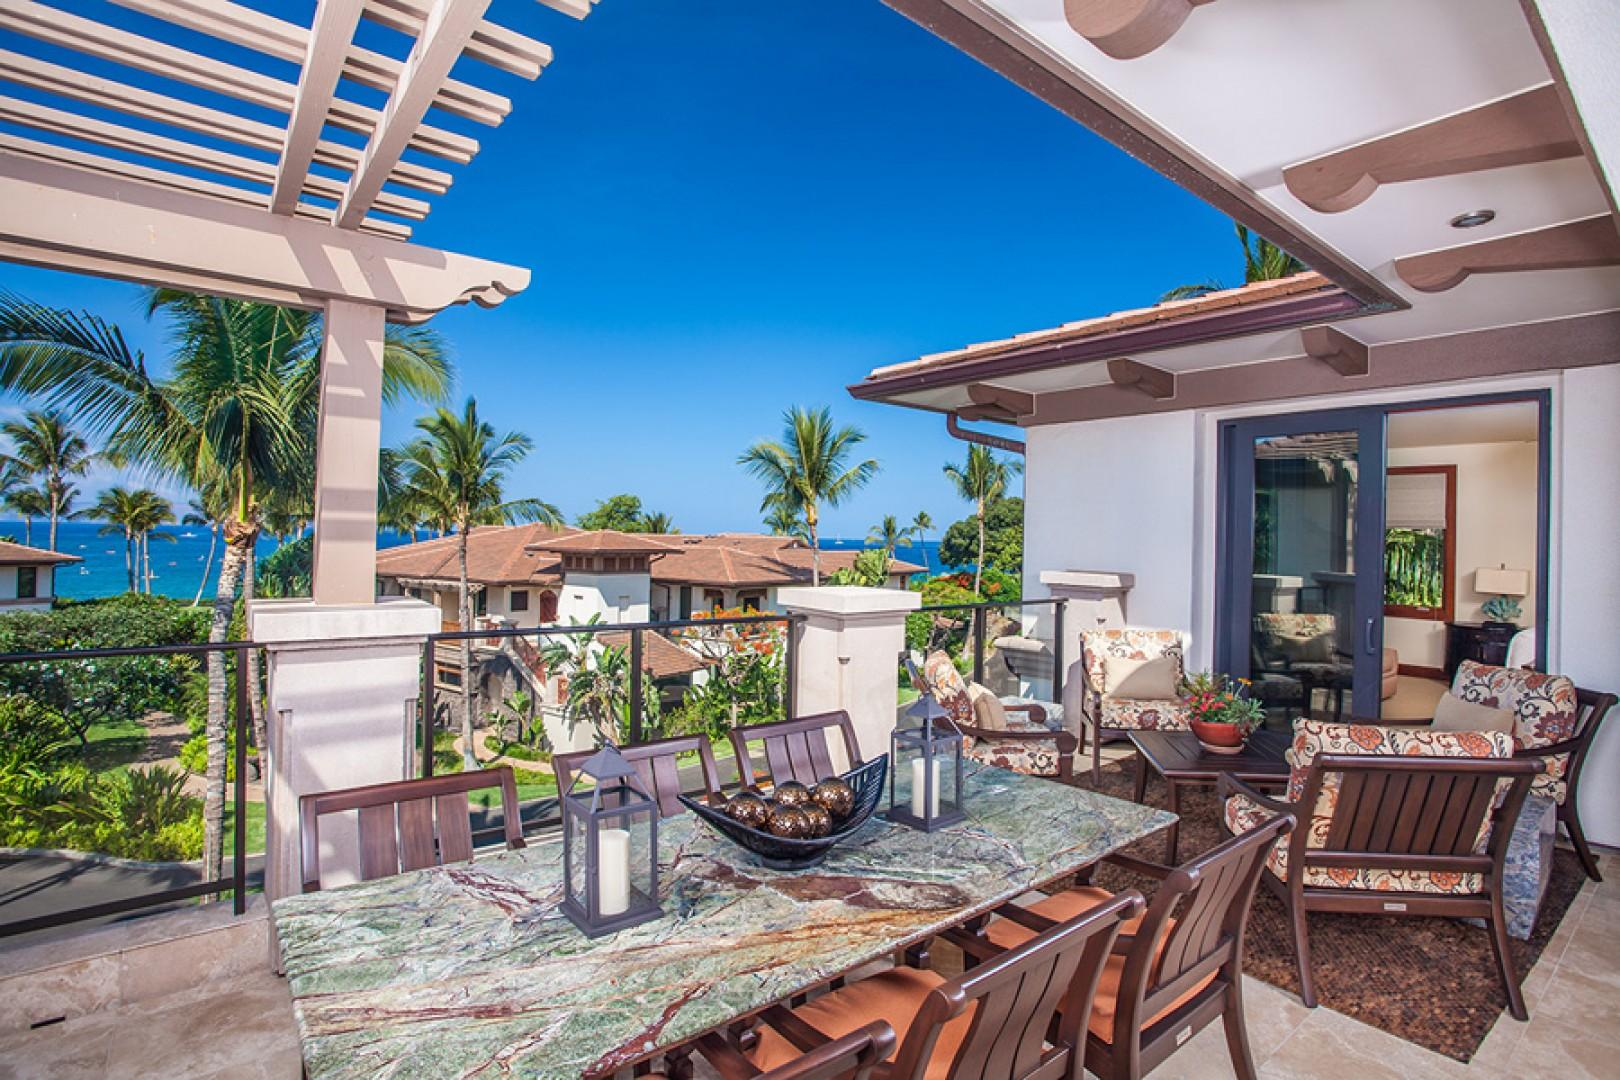 Outdoor Dining, BBQ and Lounging Terrace At C301. Direct Access to the Ocean Master Bedroom.